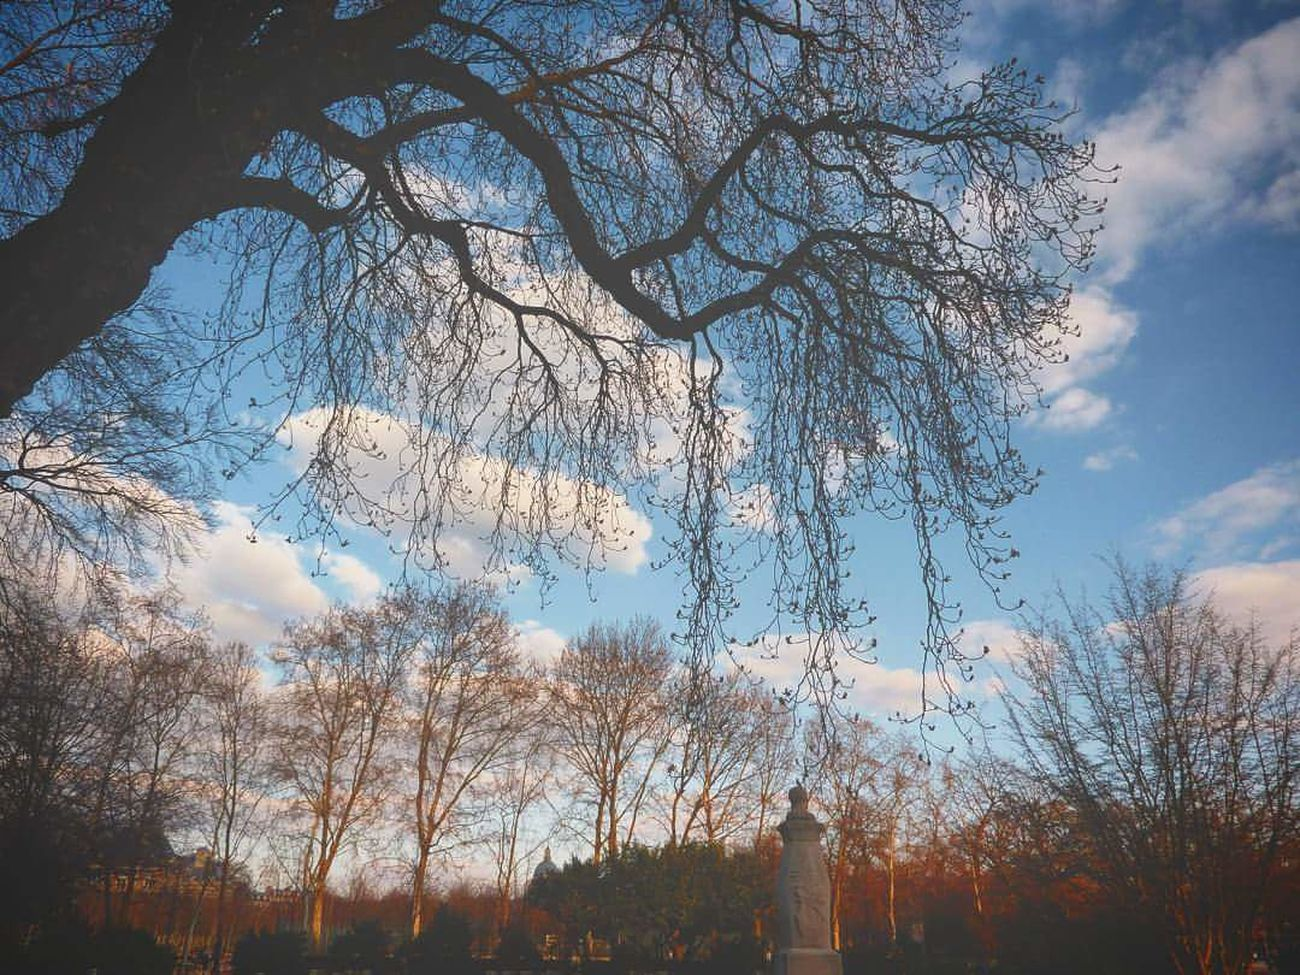 Blue Tree Sky Nature Low Angle View Beauty In Nature No People Sunset Sunlight Tranquility Outdoors Branch Bare Tree Growth Scenics Cloud - Sky Day Park Paris, France  Paris Jardin Du Luxembourg Luxembourg Garden EyeEmNewHere Long Goodbye